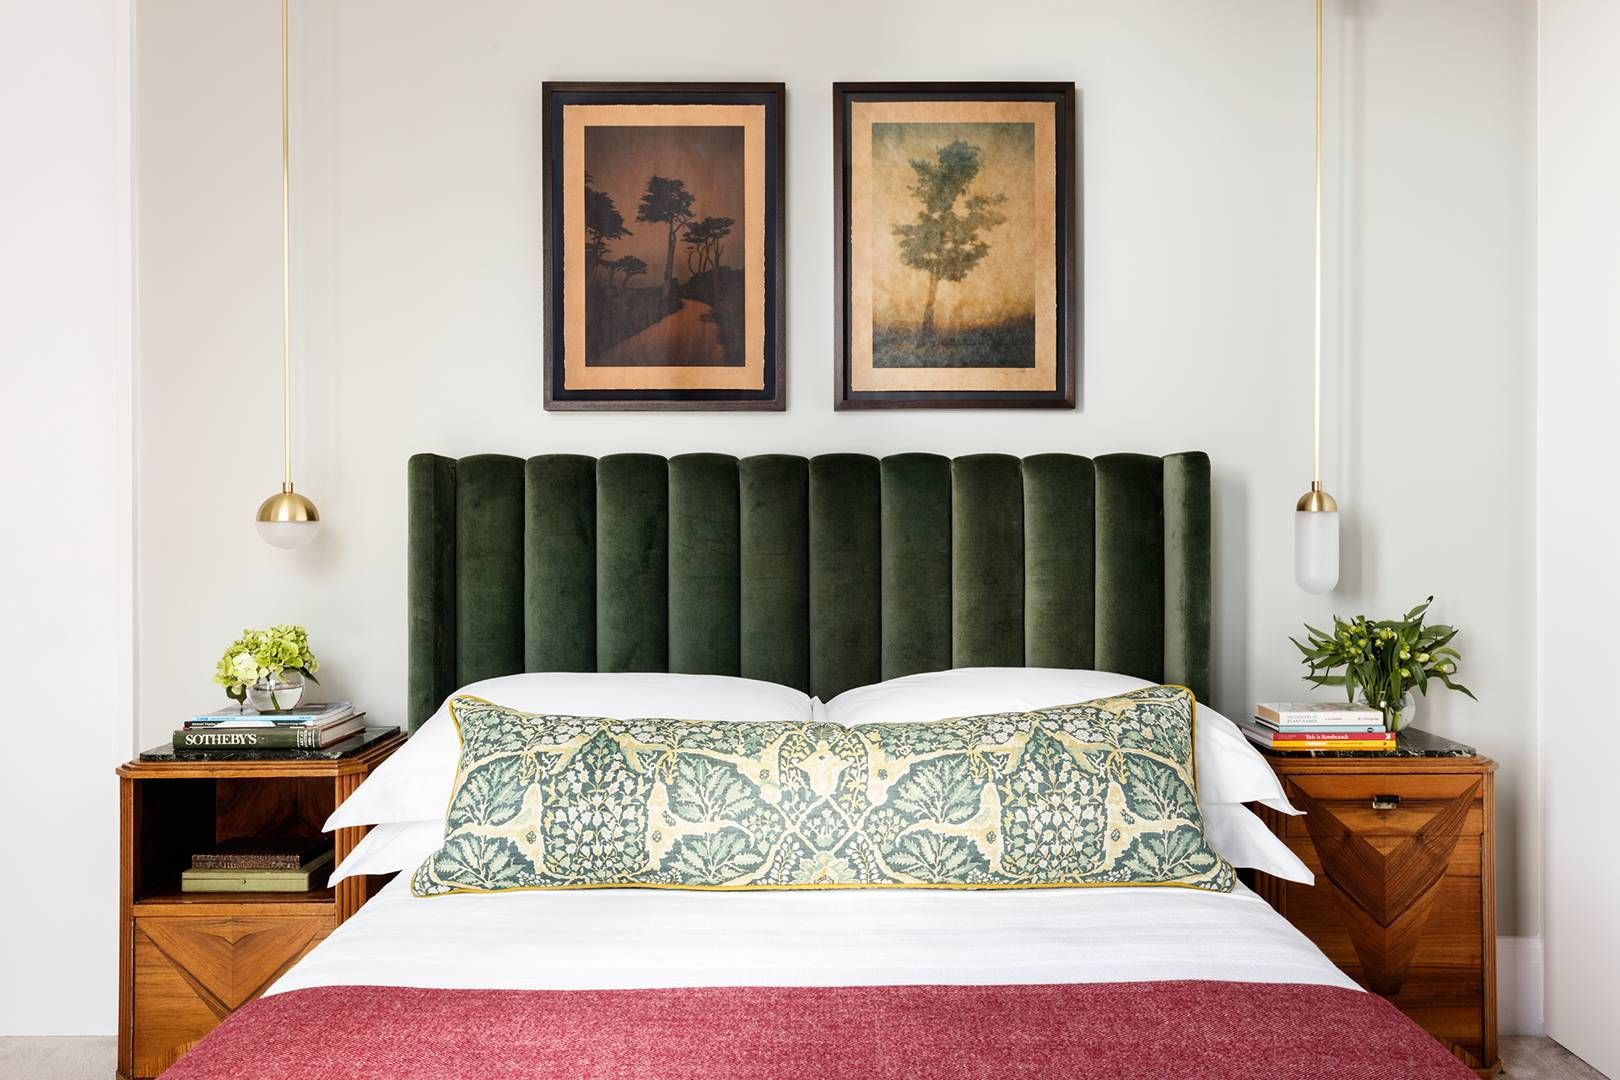 Home furniture bed designs 10 Bed How To Style Bed 50 Stylish Bedroom Design Ideas Modern Bedrooms Decorating Tips